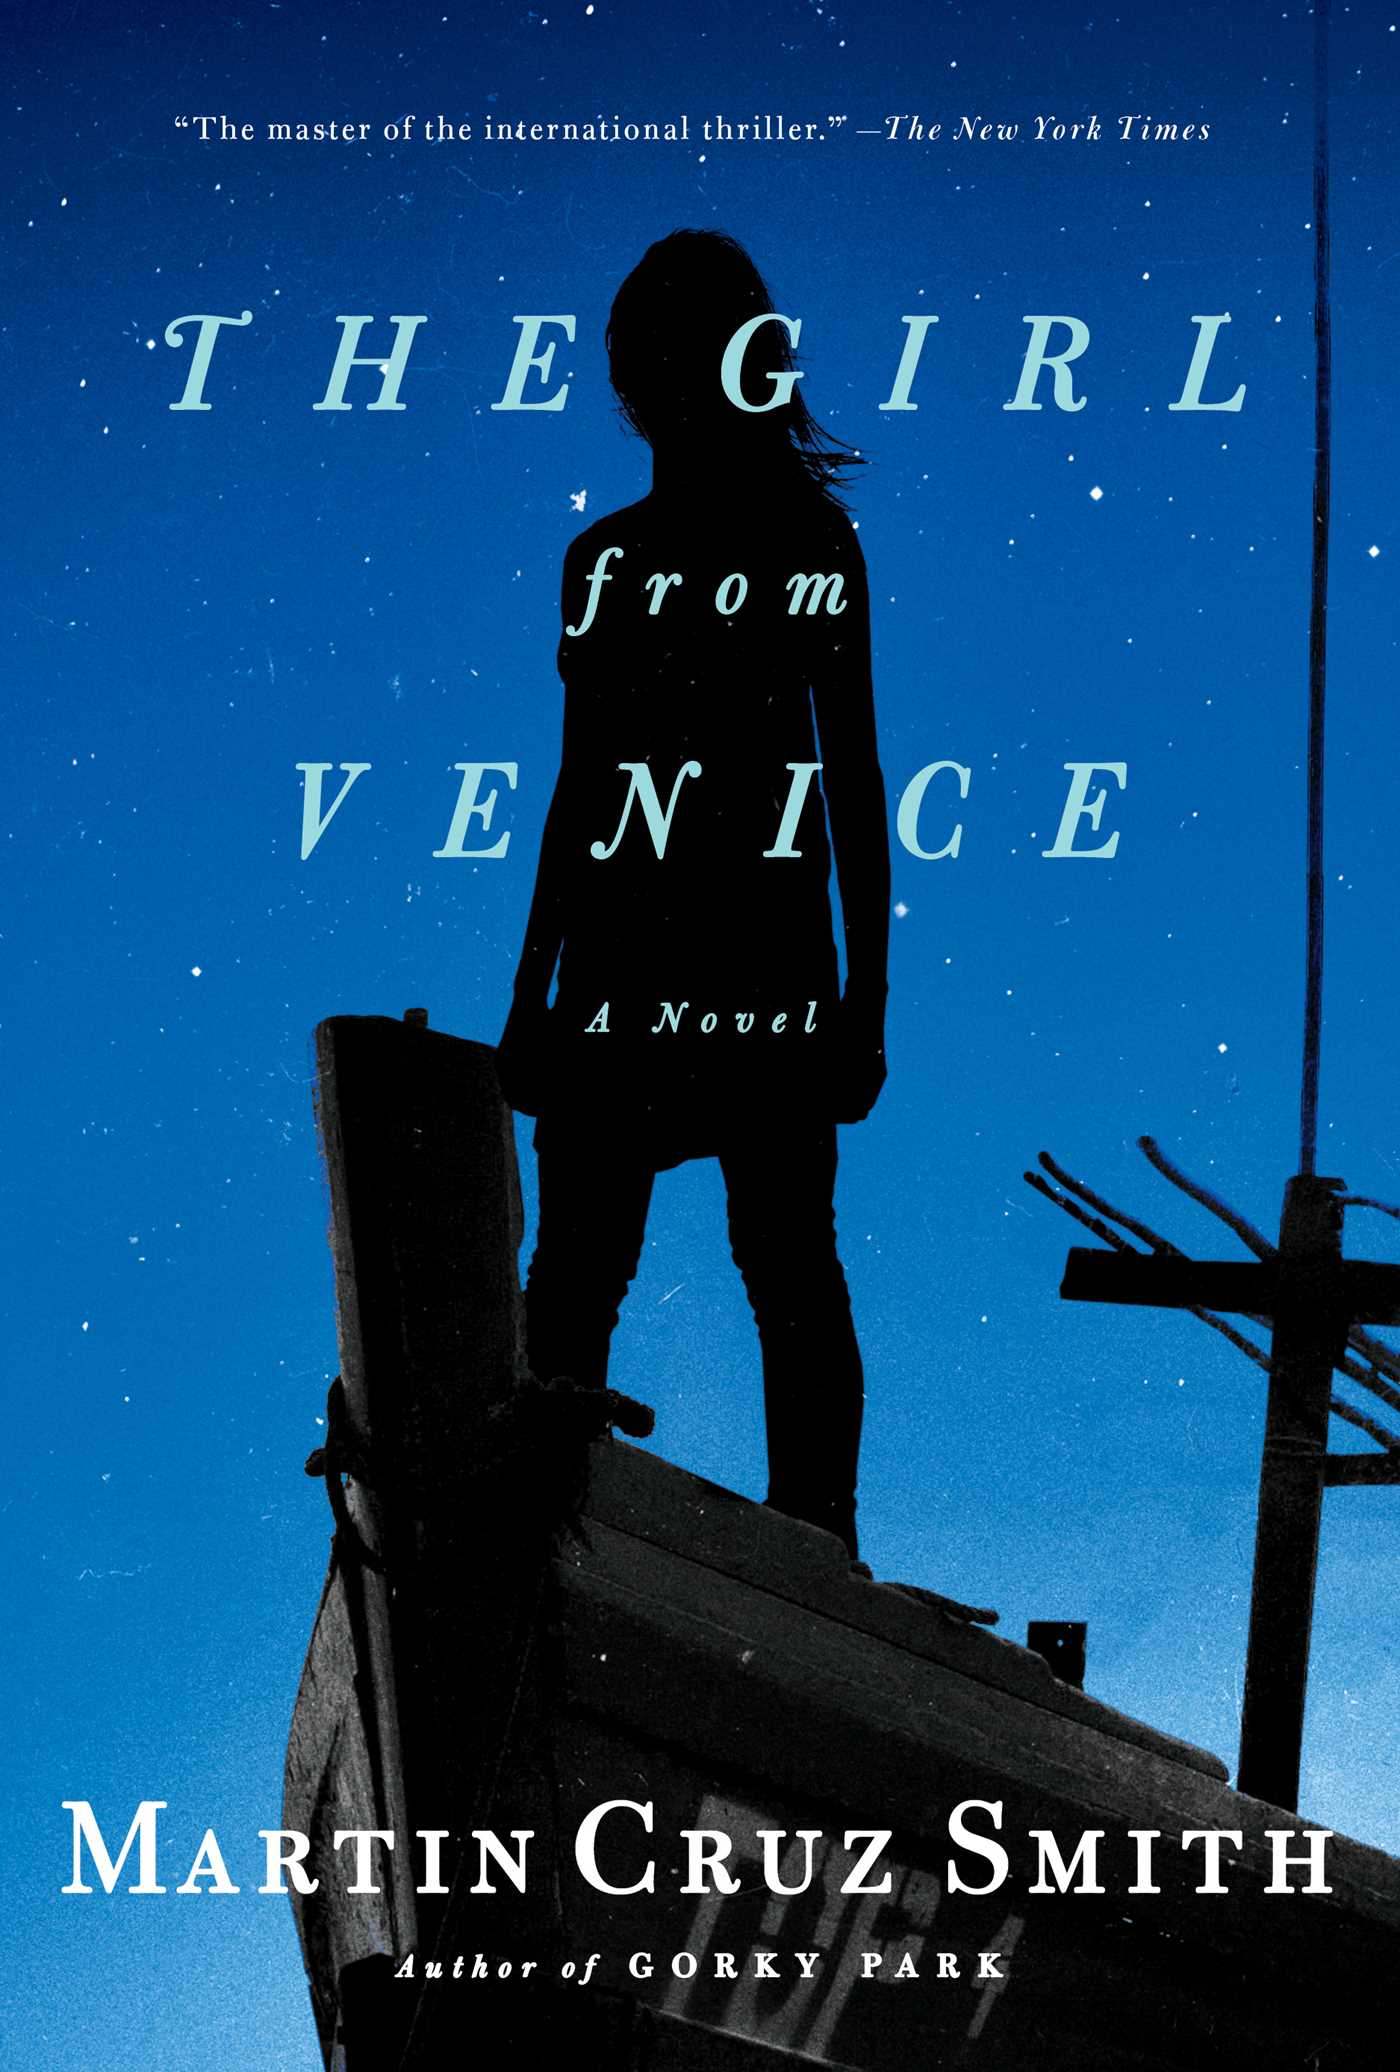 The girl from venice 9781439153192 hr